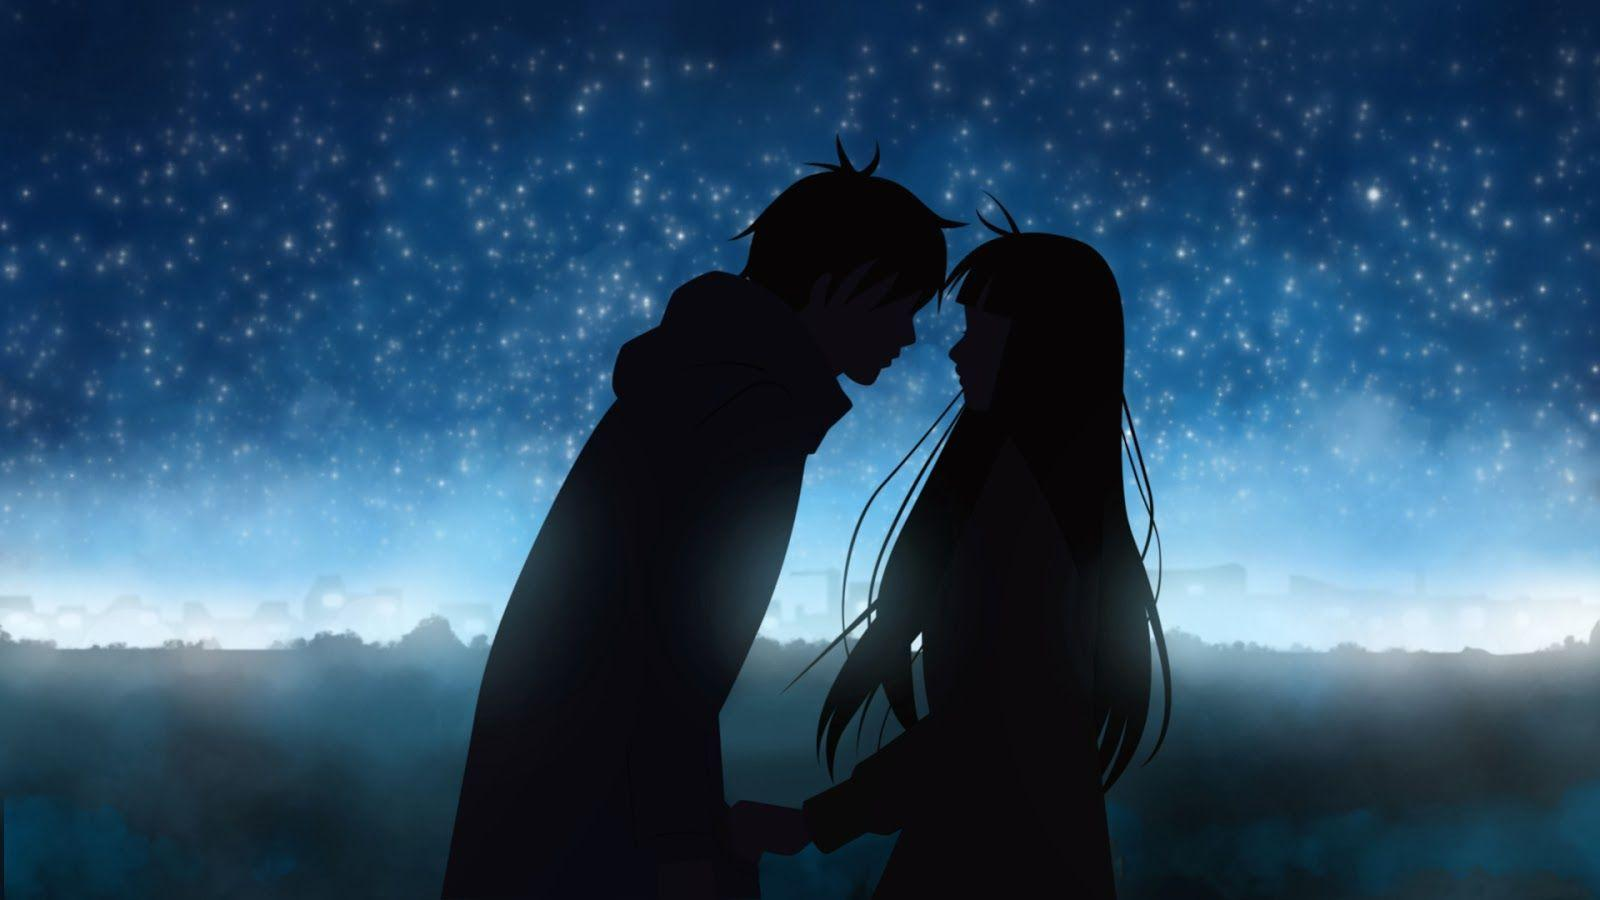 Love couple Hd Live Wallpaper : Anime Love Wallpapers - Wallpaper cave